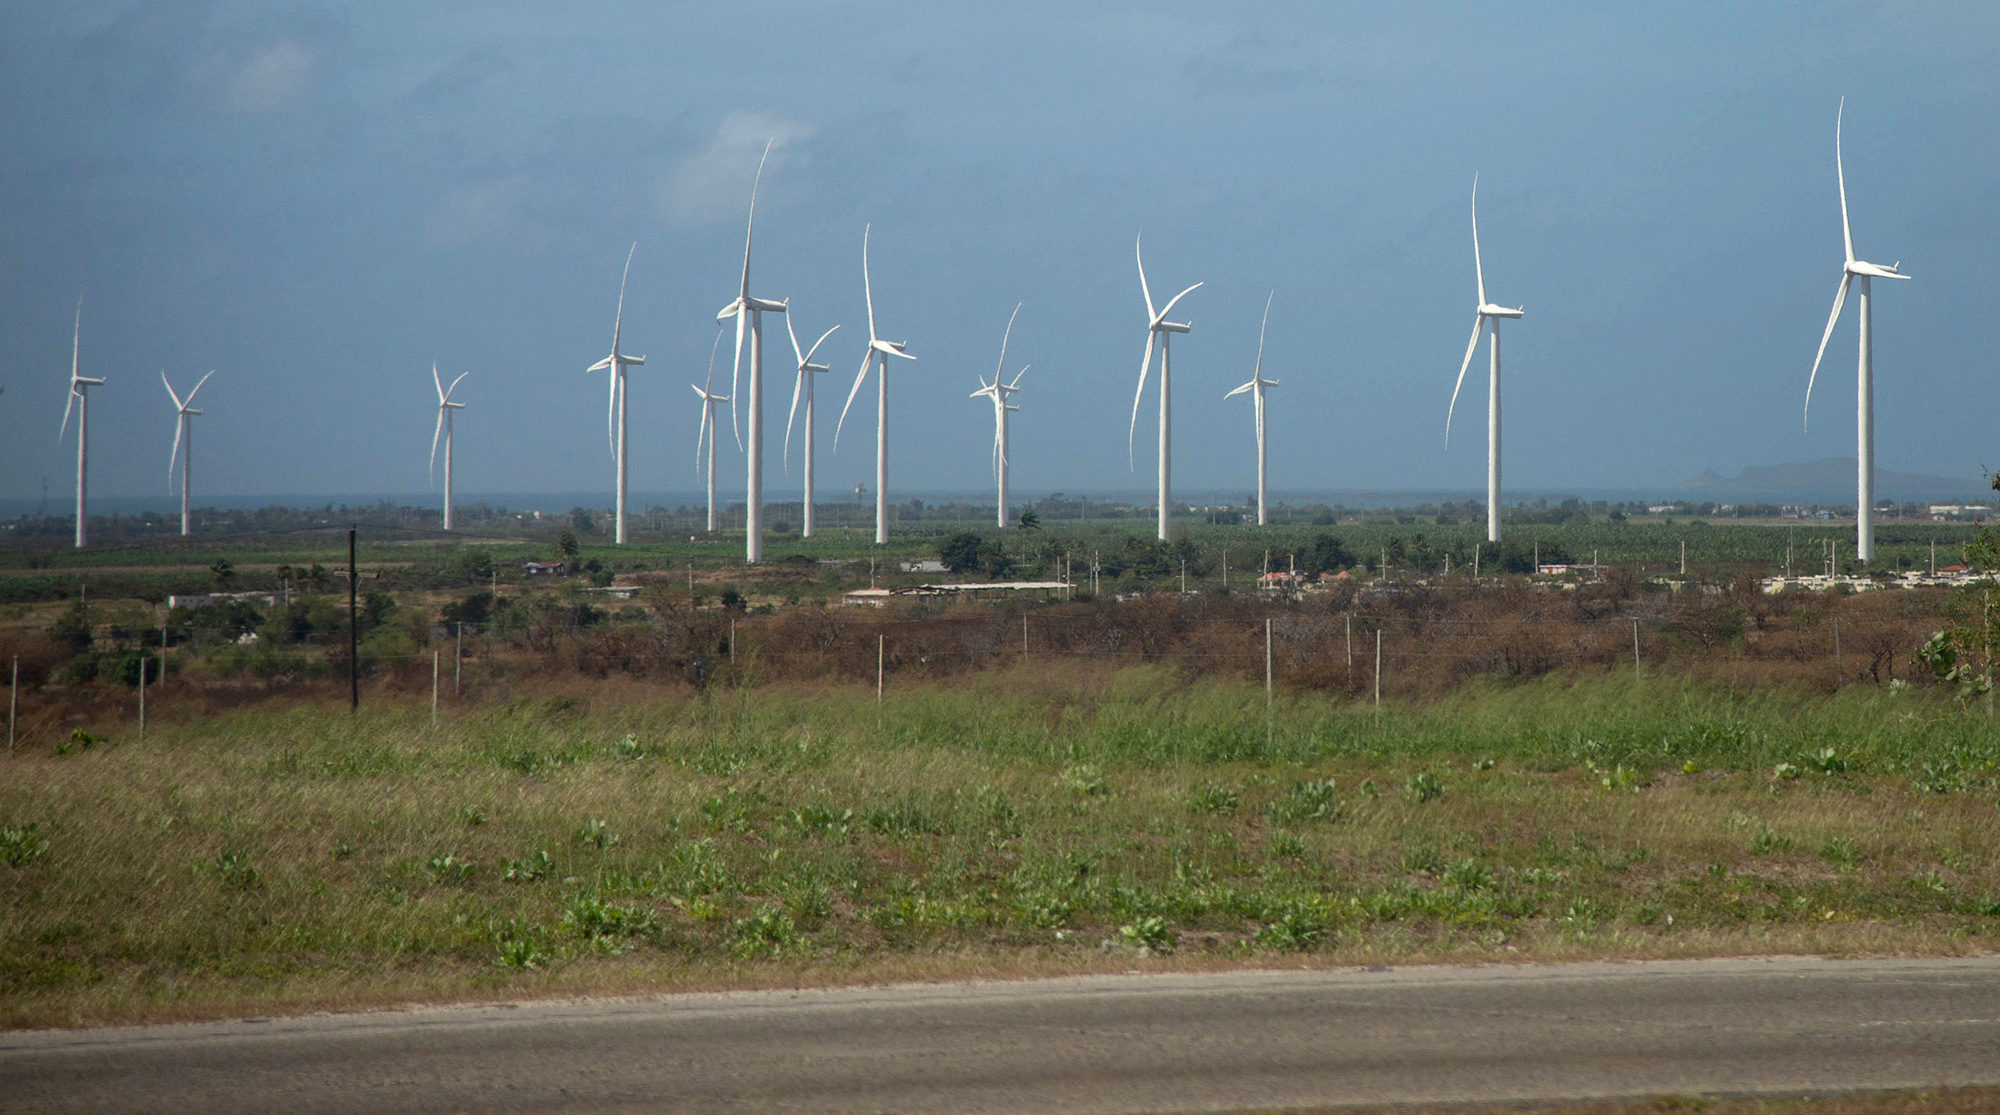 A wind farm on the south coast of Puerto Rico. Photo by Valerie Welch